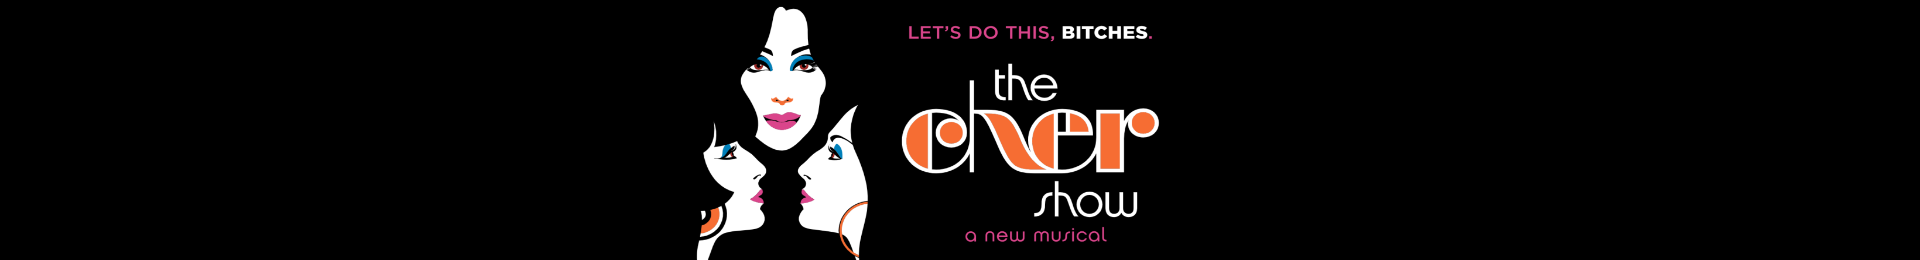 The Cher Show banner image